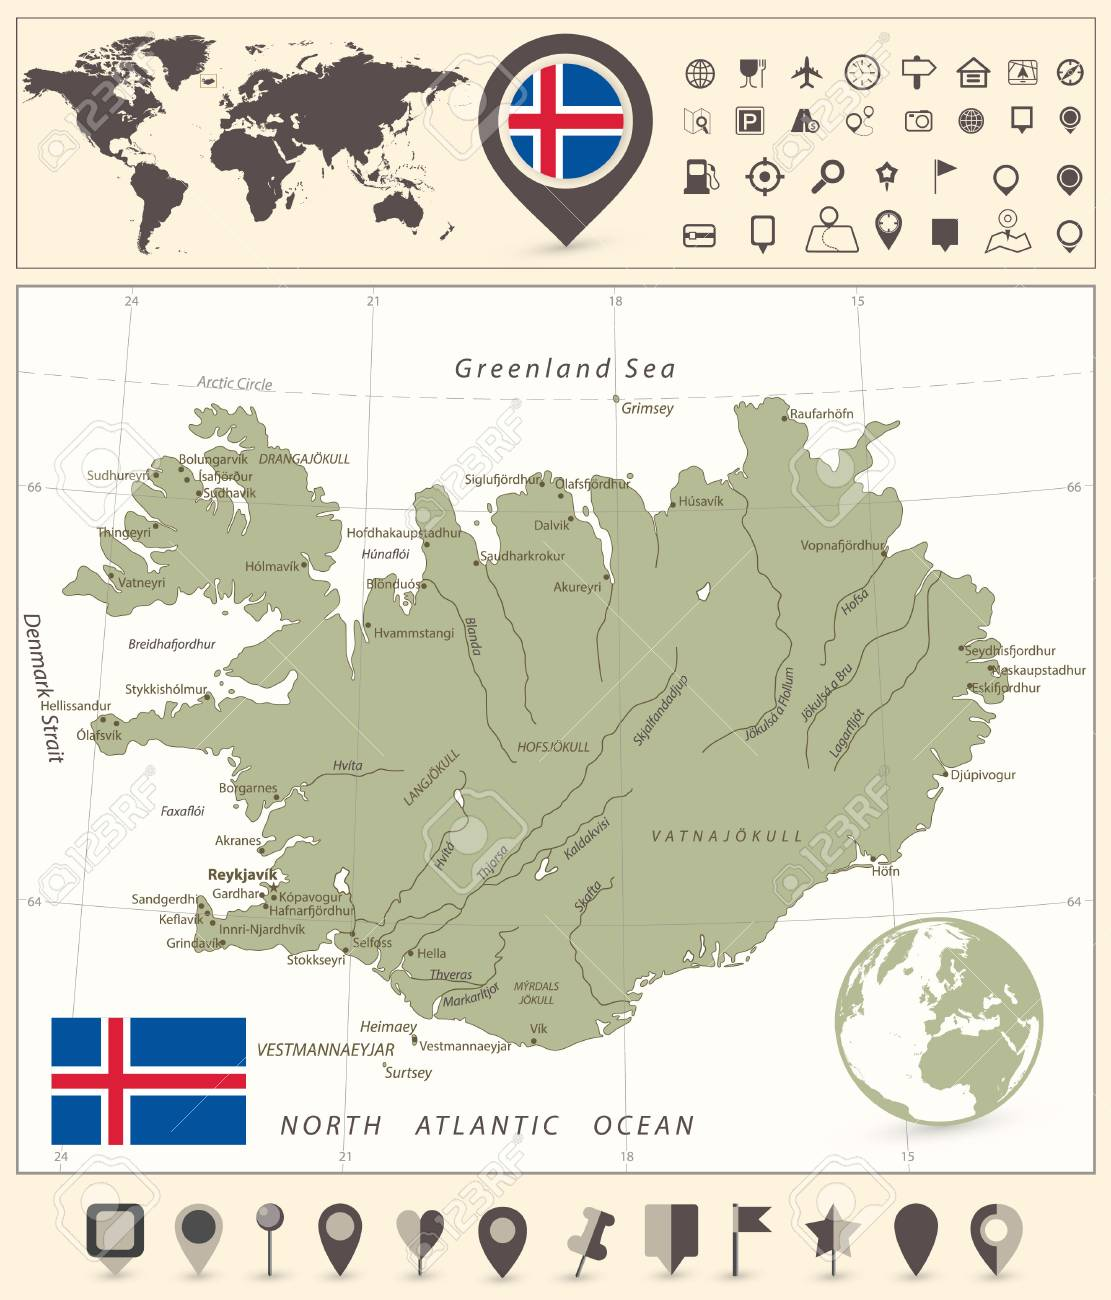 Navigation World Map.Iceland Map And World Map With Navigation Icons Vector Illustration